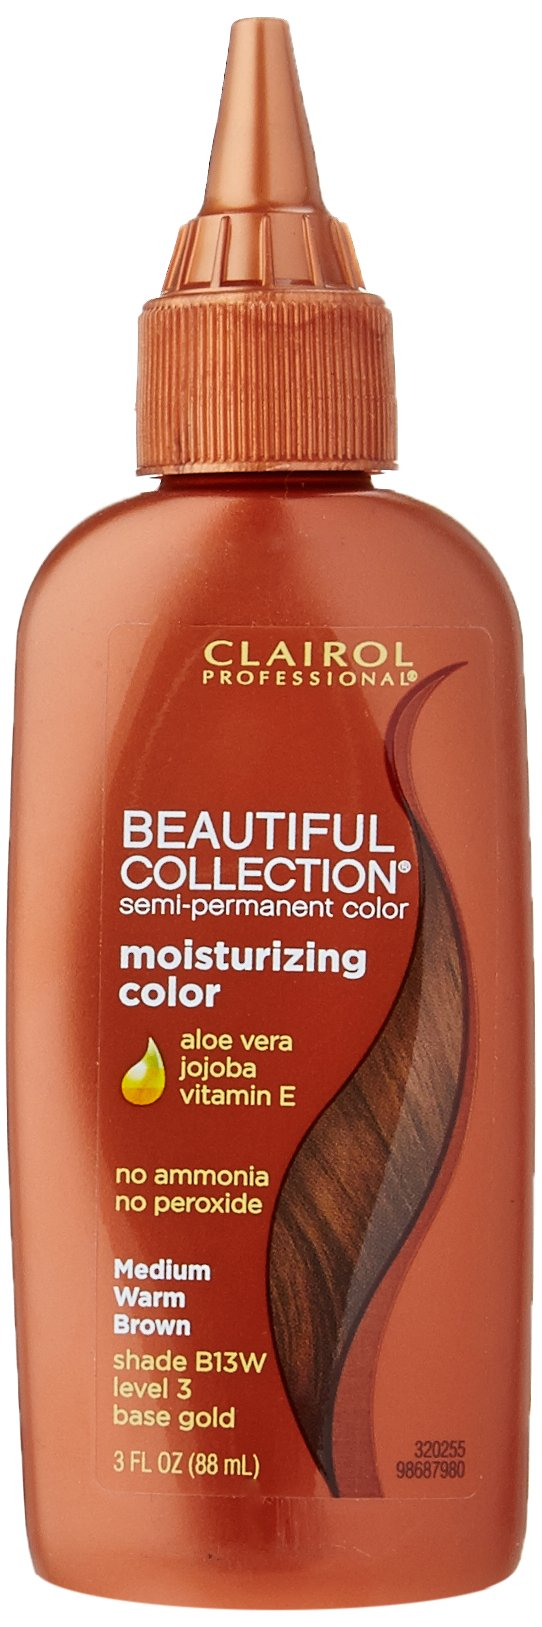 Clairol Beautiful Collection Semi Permanent Hair Color Directions